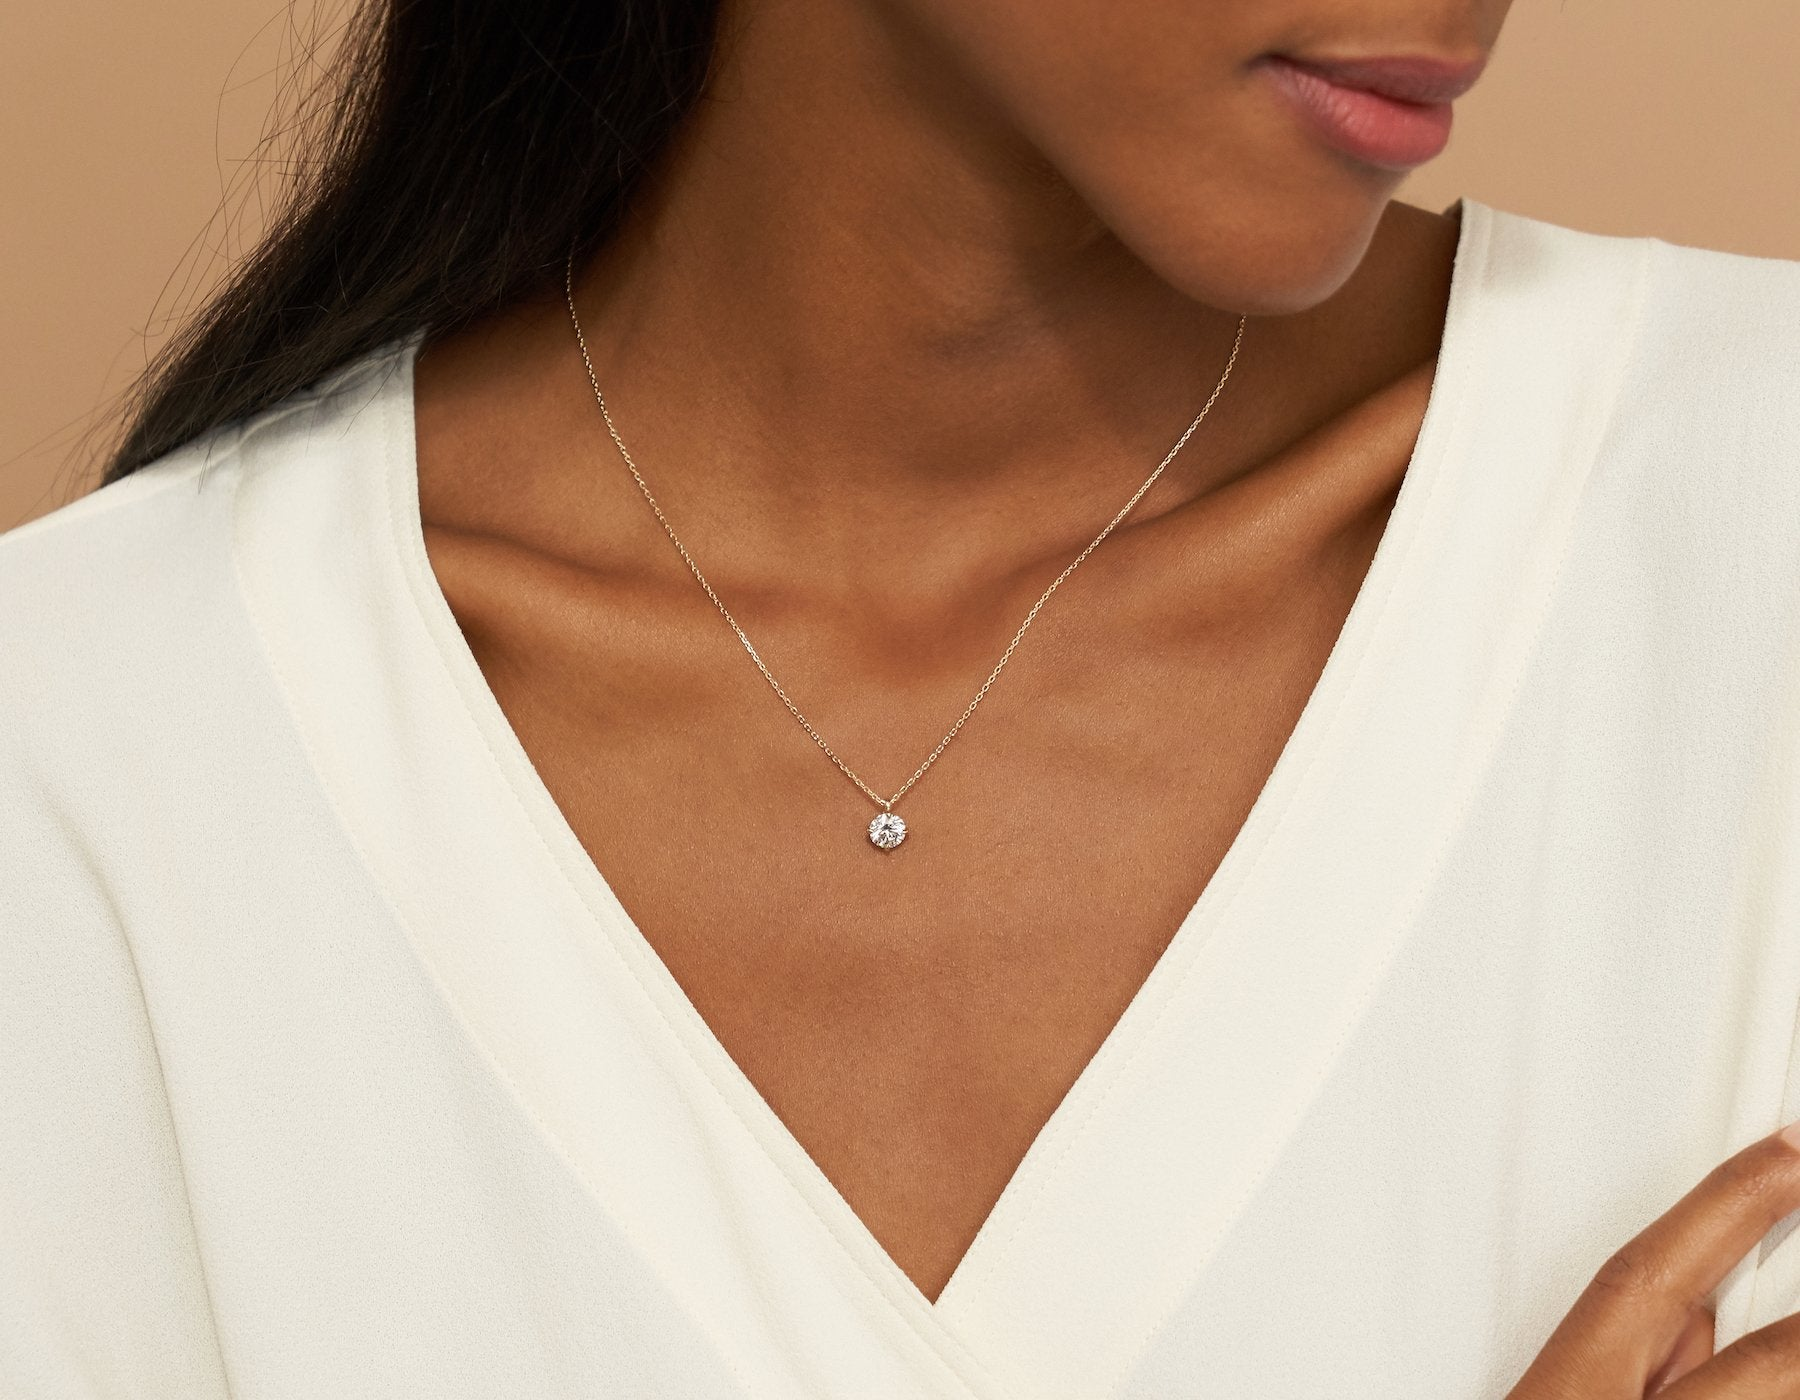 Model wearing Vrai 14K solid gold solitaire round brilliant diamond pendant necklace 1ct minimalist delicate, 14K Yellow Gold